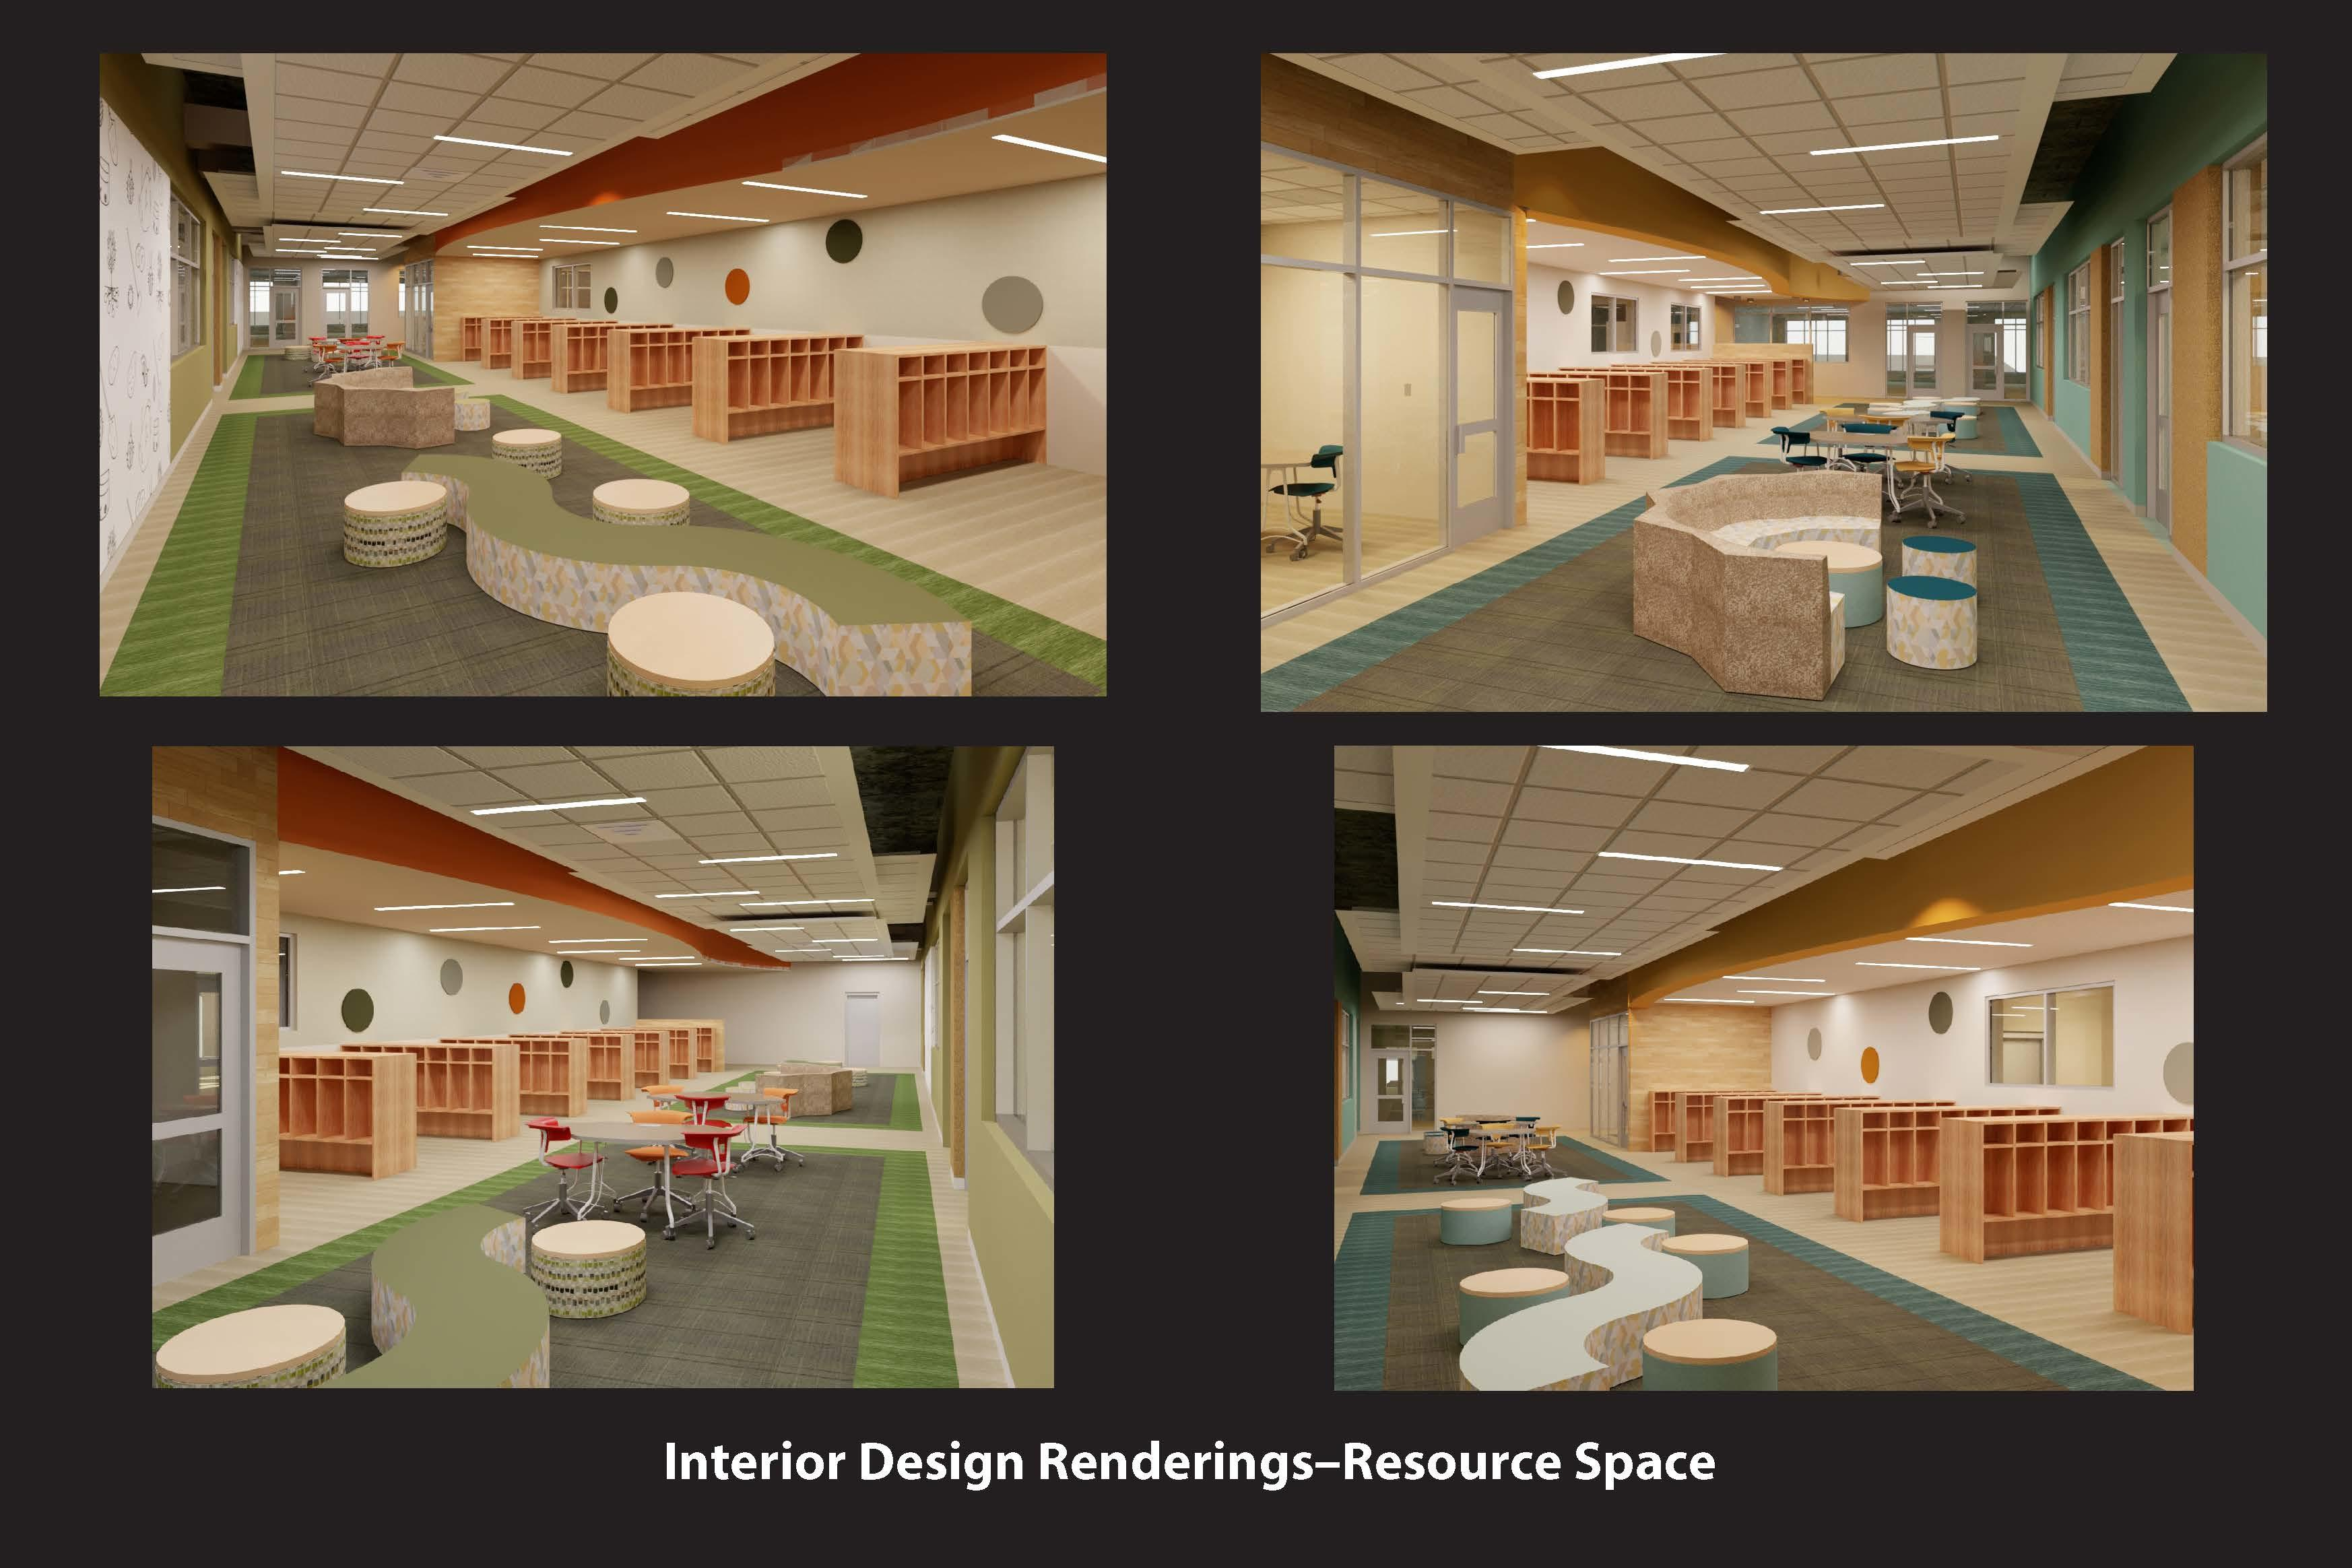 Rendering of Interior #1